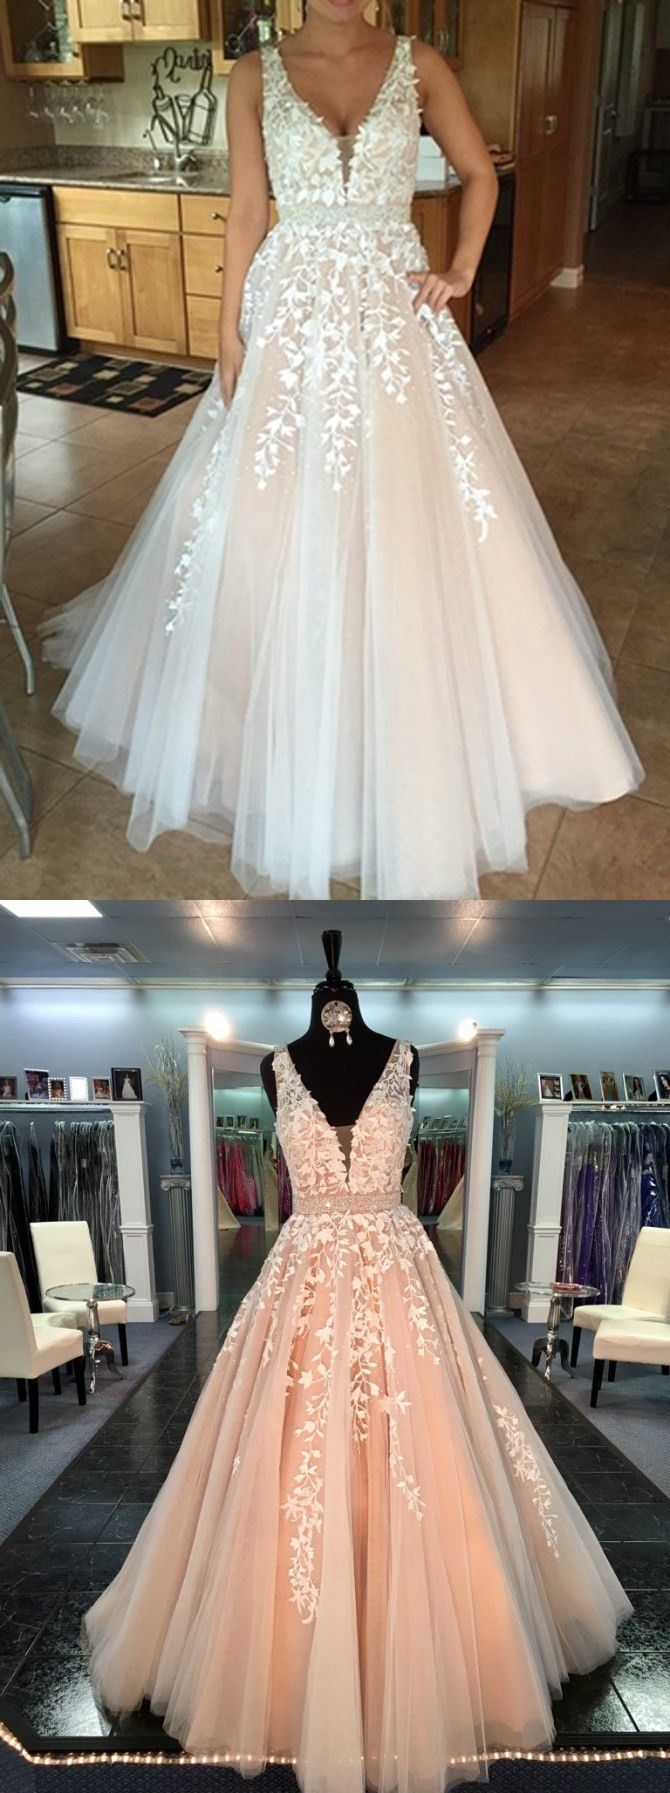 Hipster wedding dresses  Stunning Prom Dress light blush pink prom gowns long evening gowns